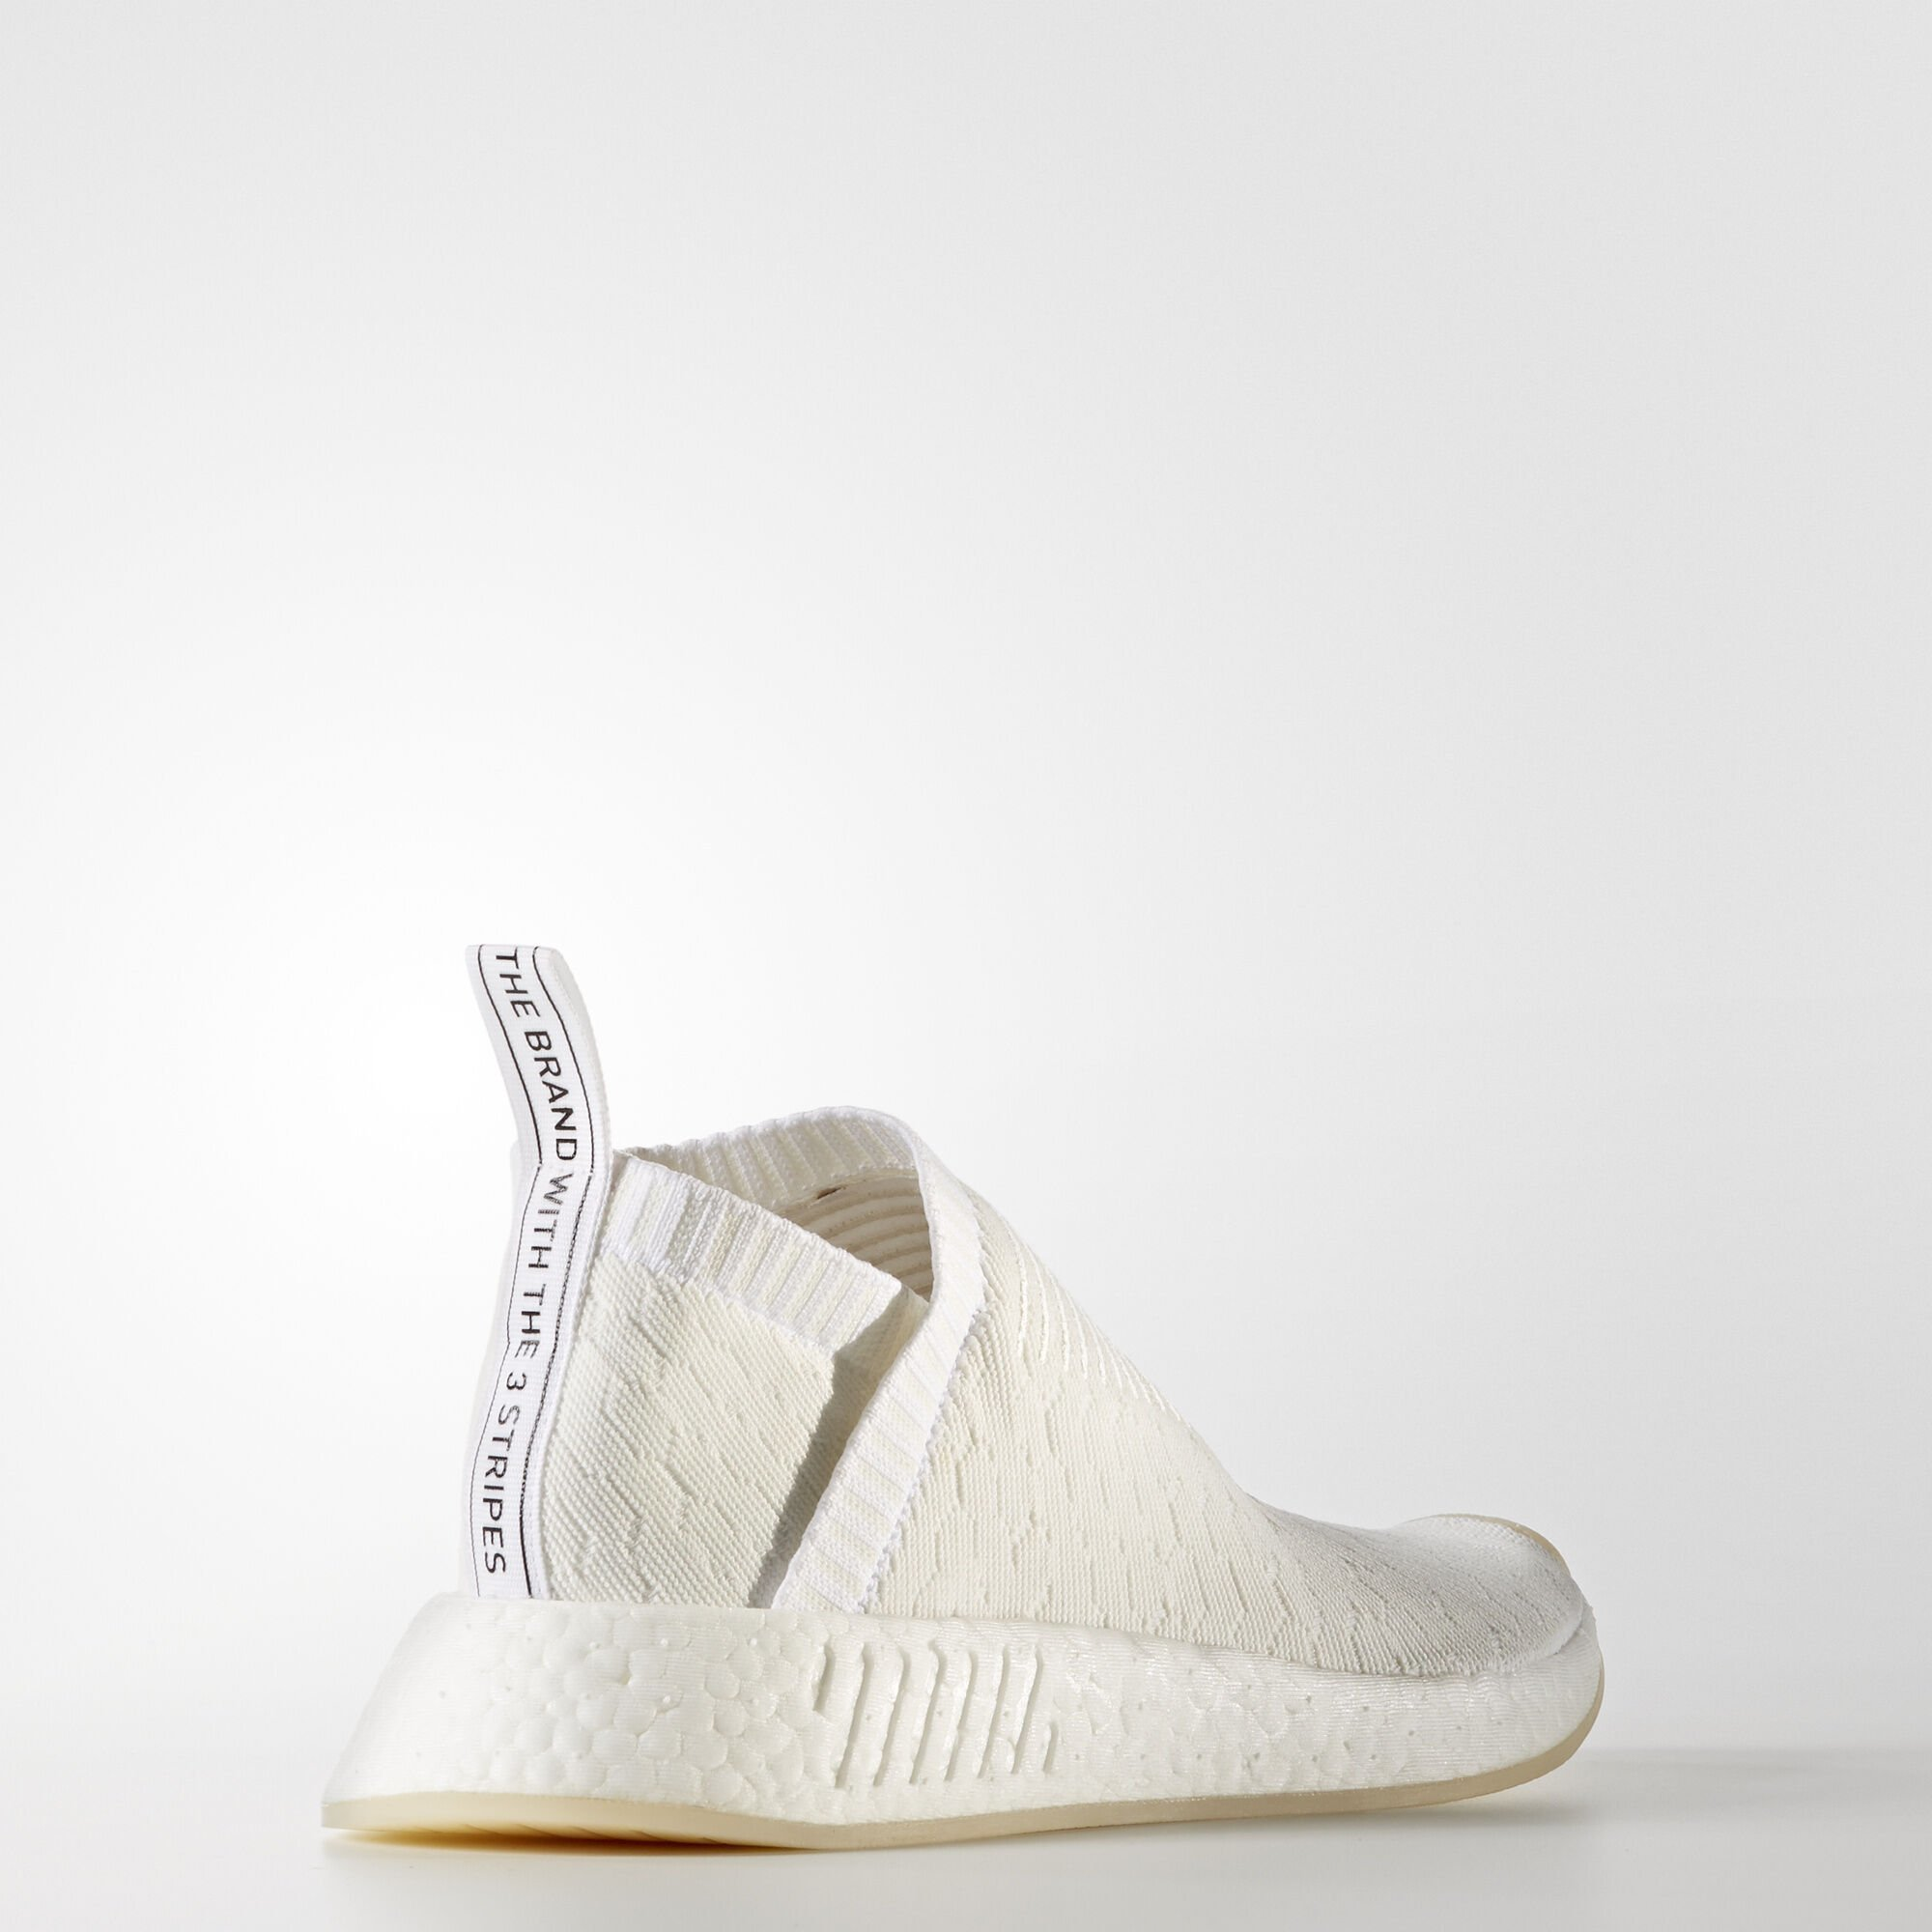 adidas  NMD CS2 Triple White (W) (BY3018)